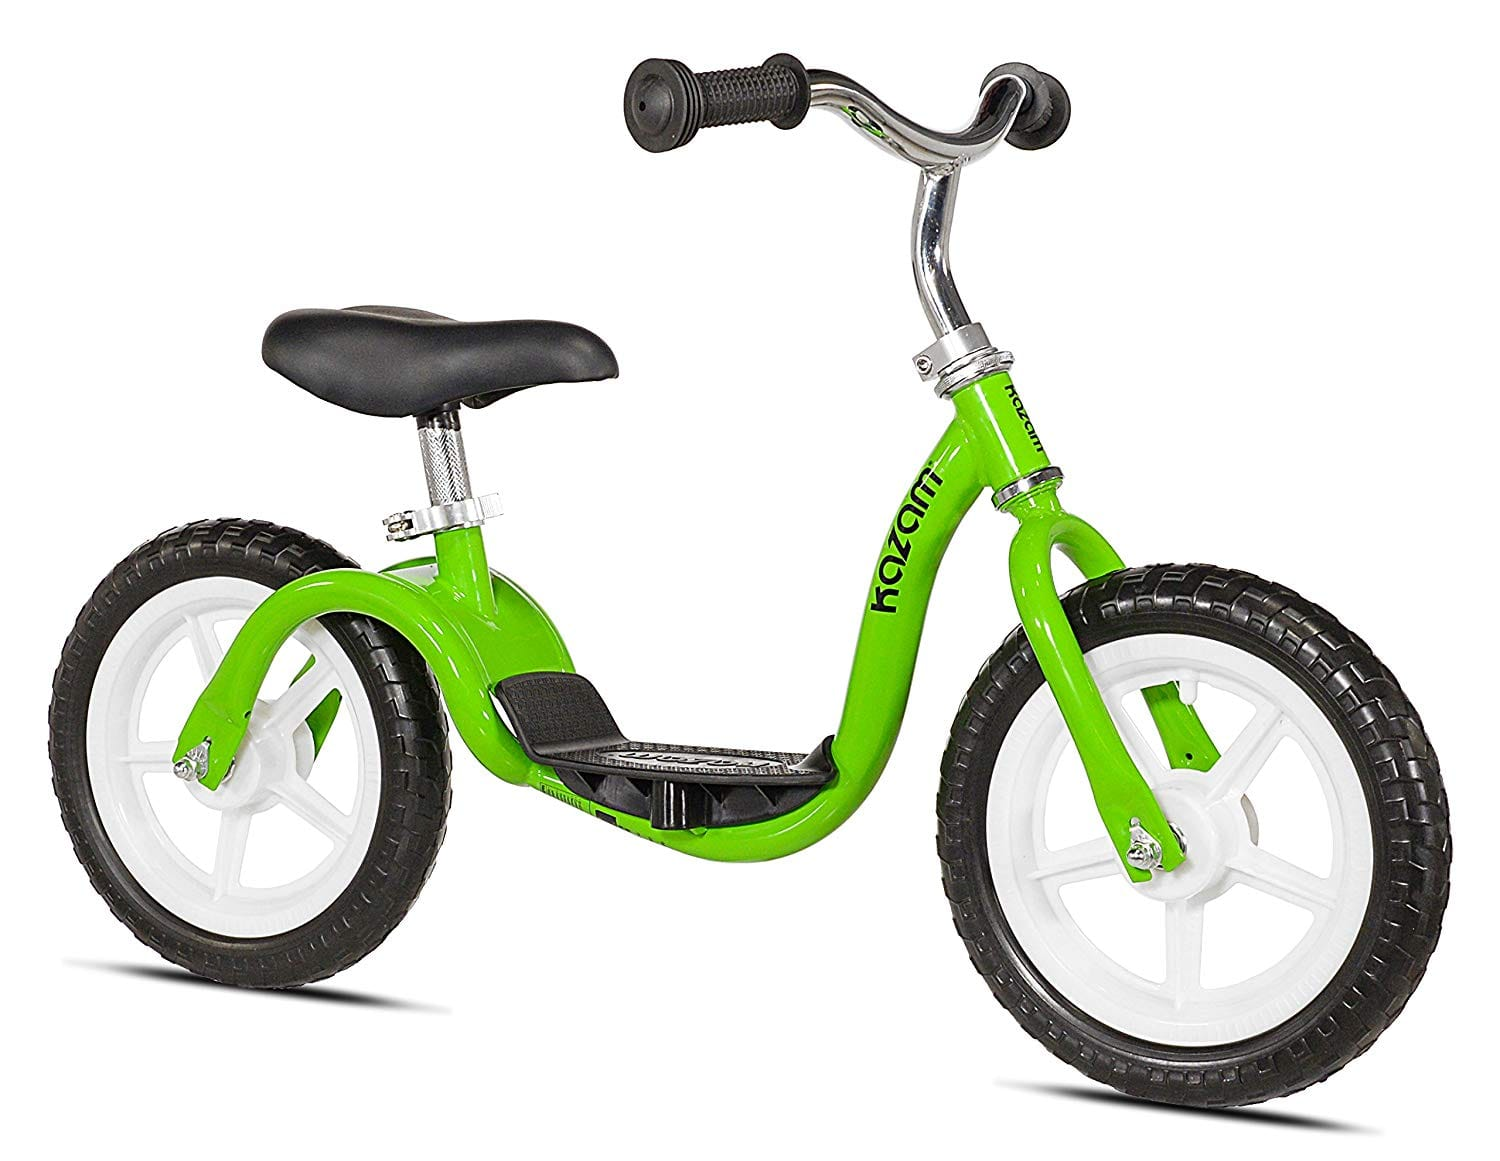 Kazam balance bike amazon only toddler bike with footrest